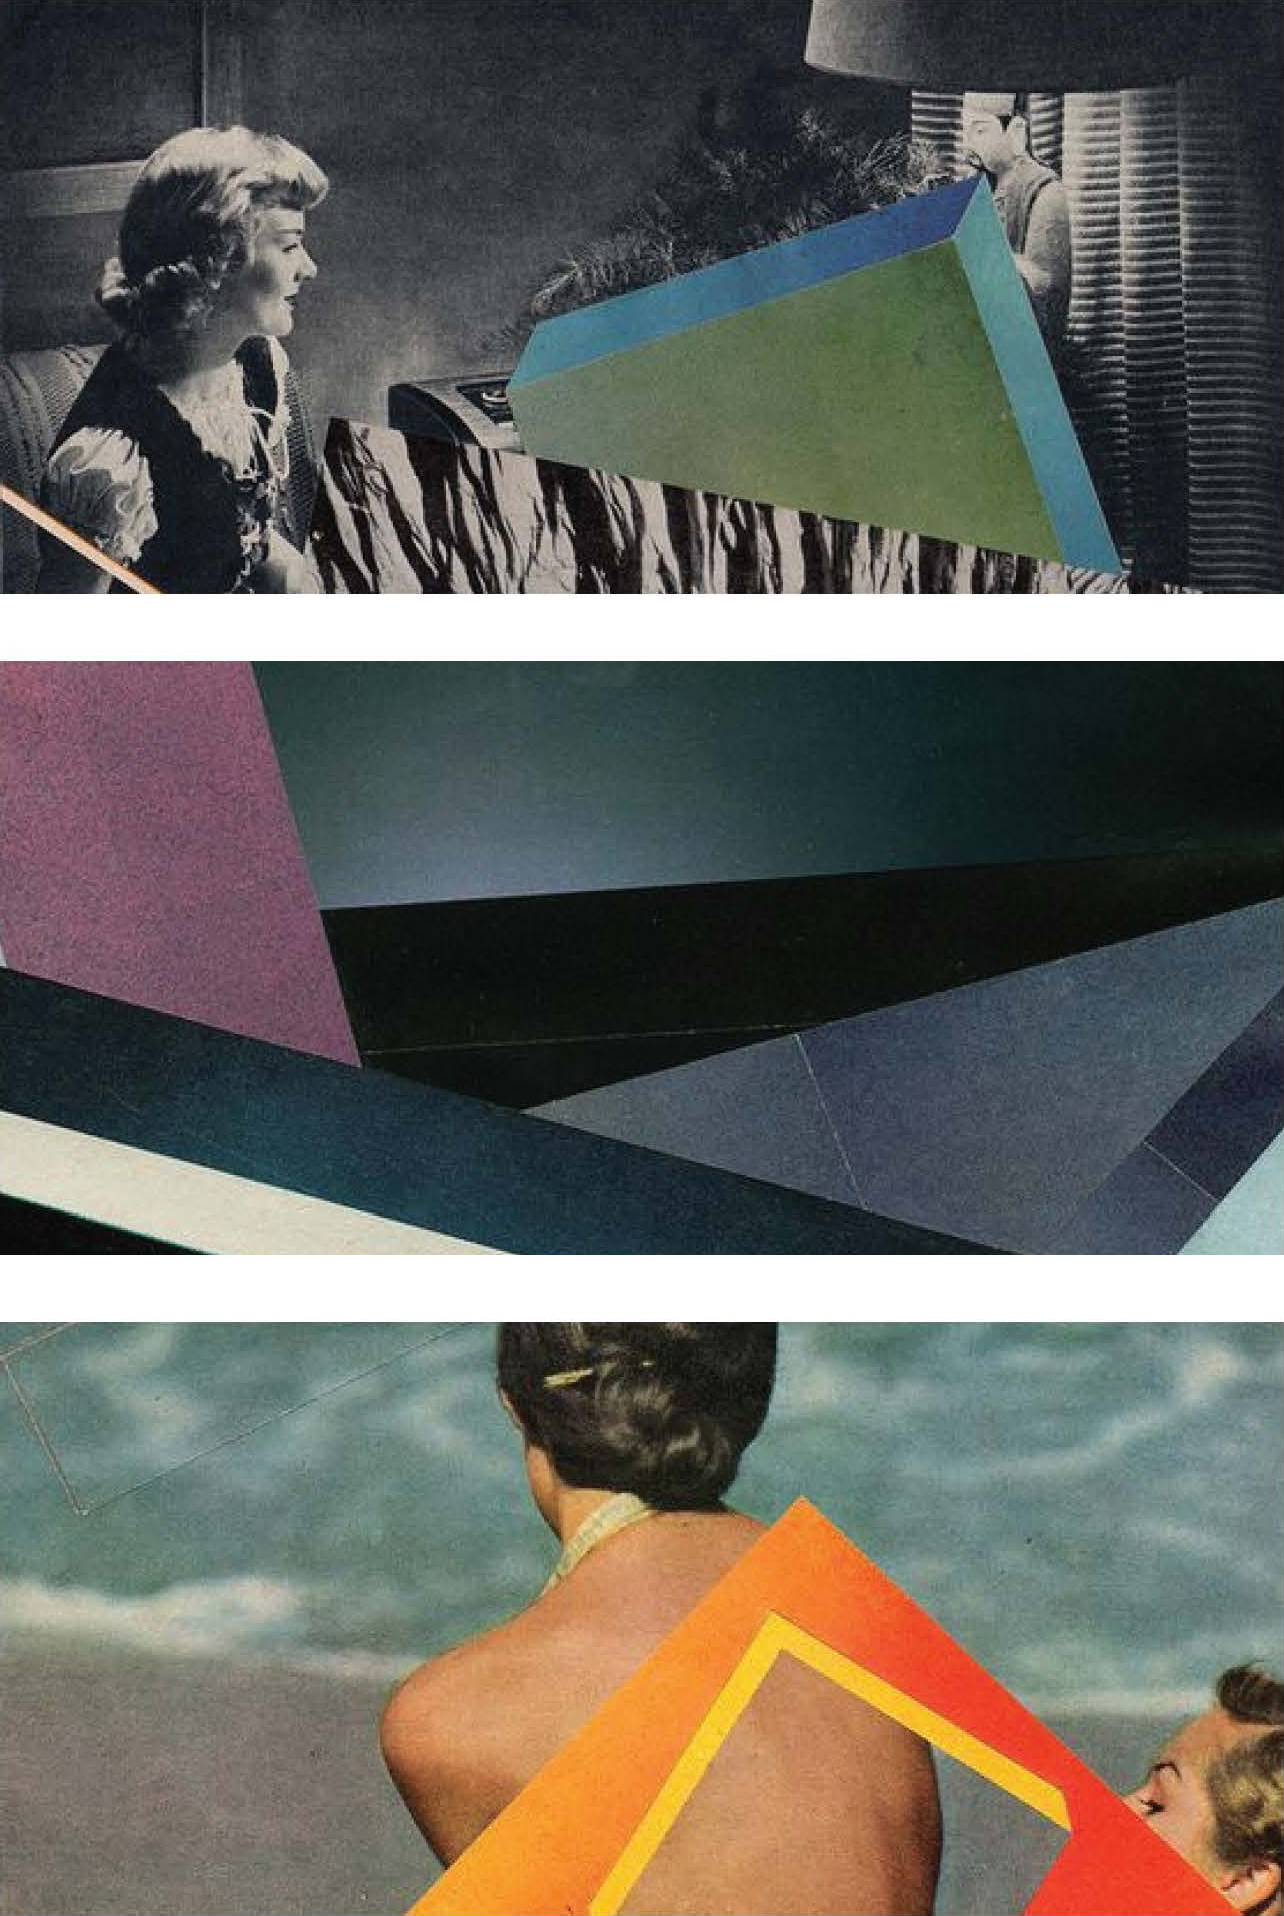 Style Inspiration:  The style images above are all cropped portions of collages that I've made. I'd like to use the geometric forms, smooth gradients, and vintage photography to convey themes of isolation, alienation, hypnagogic state.